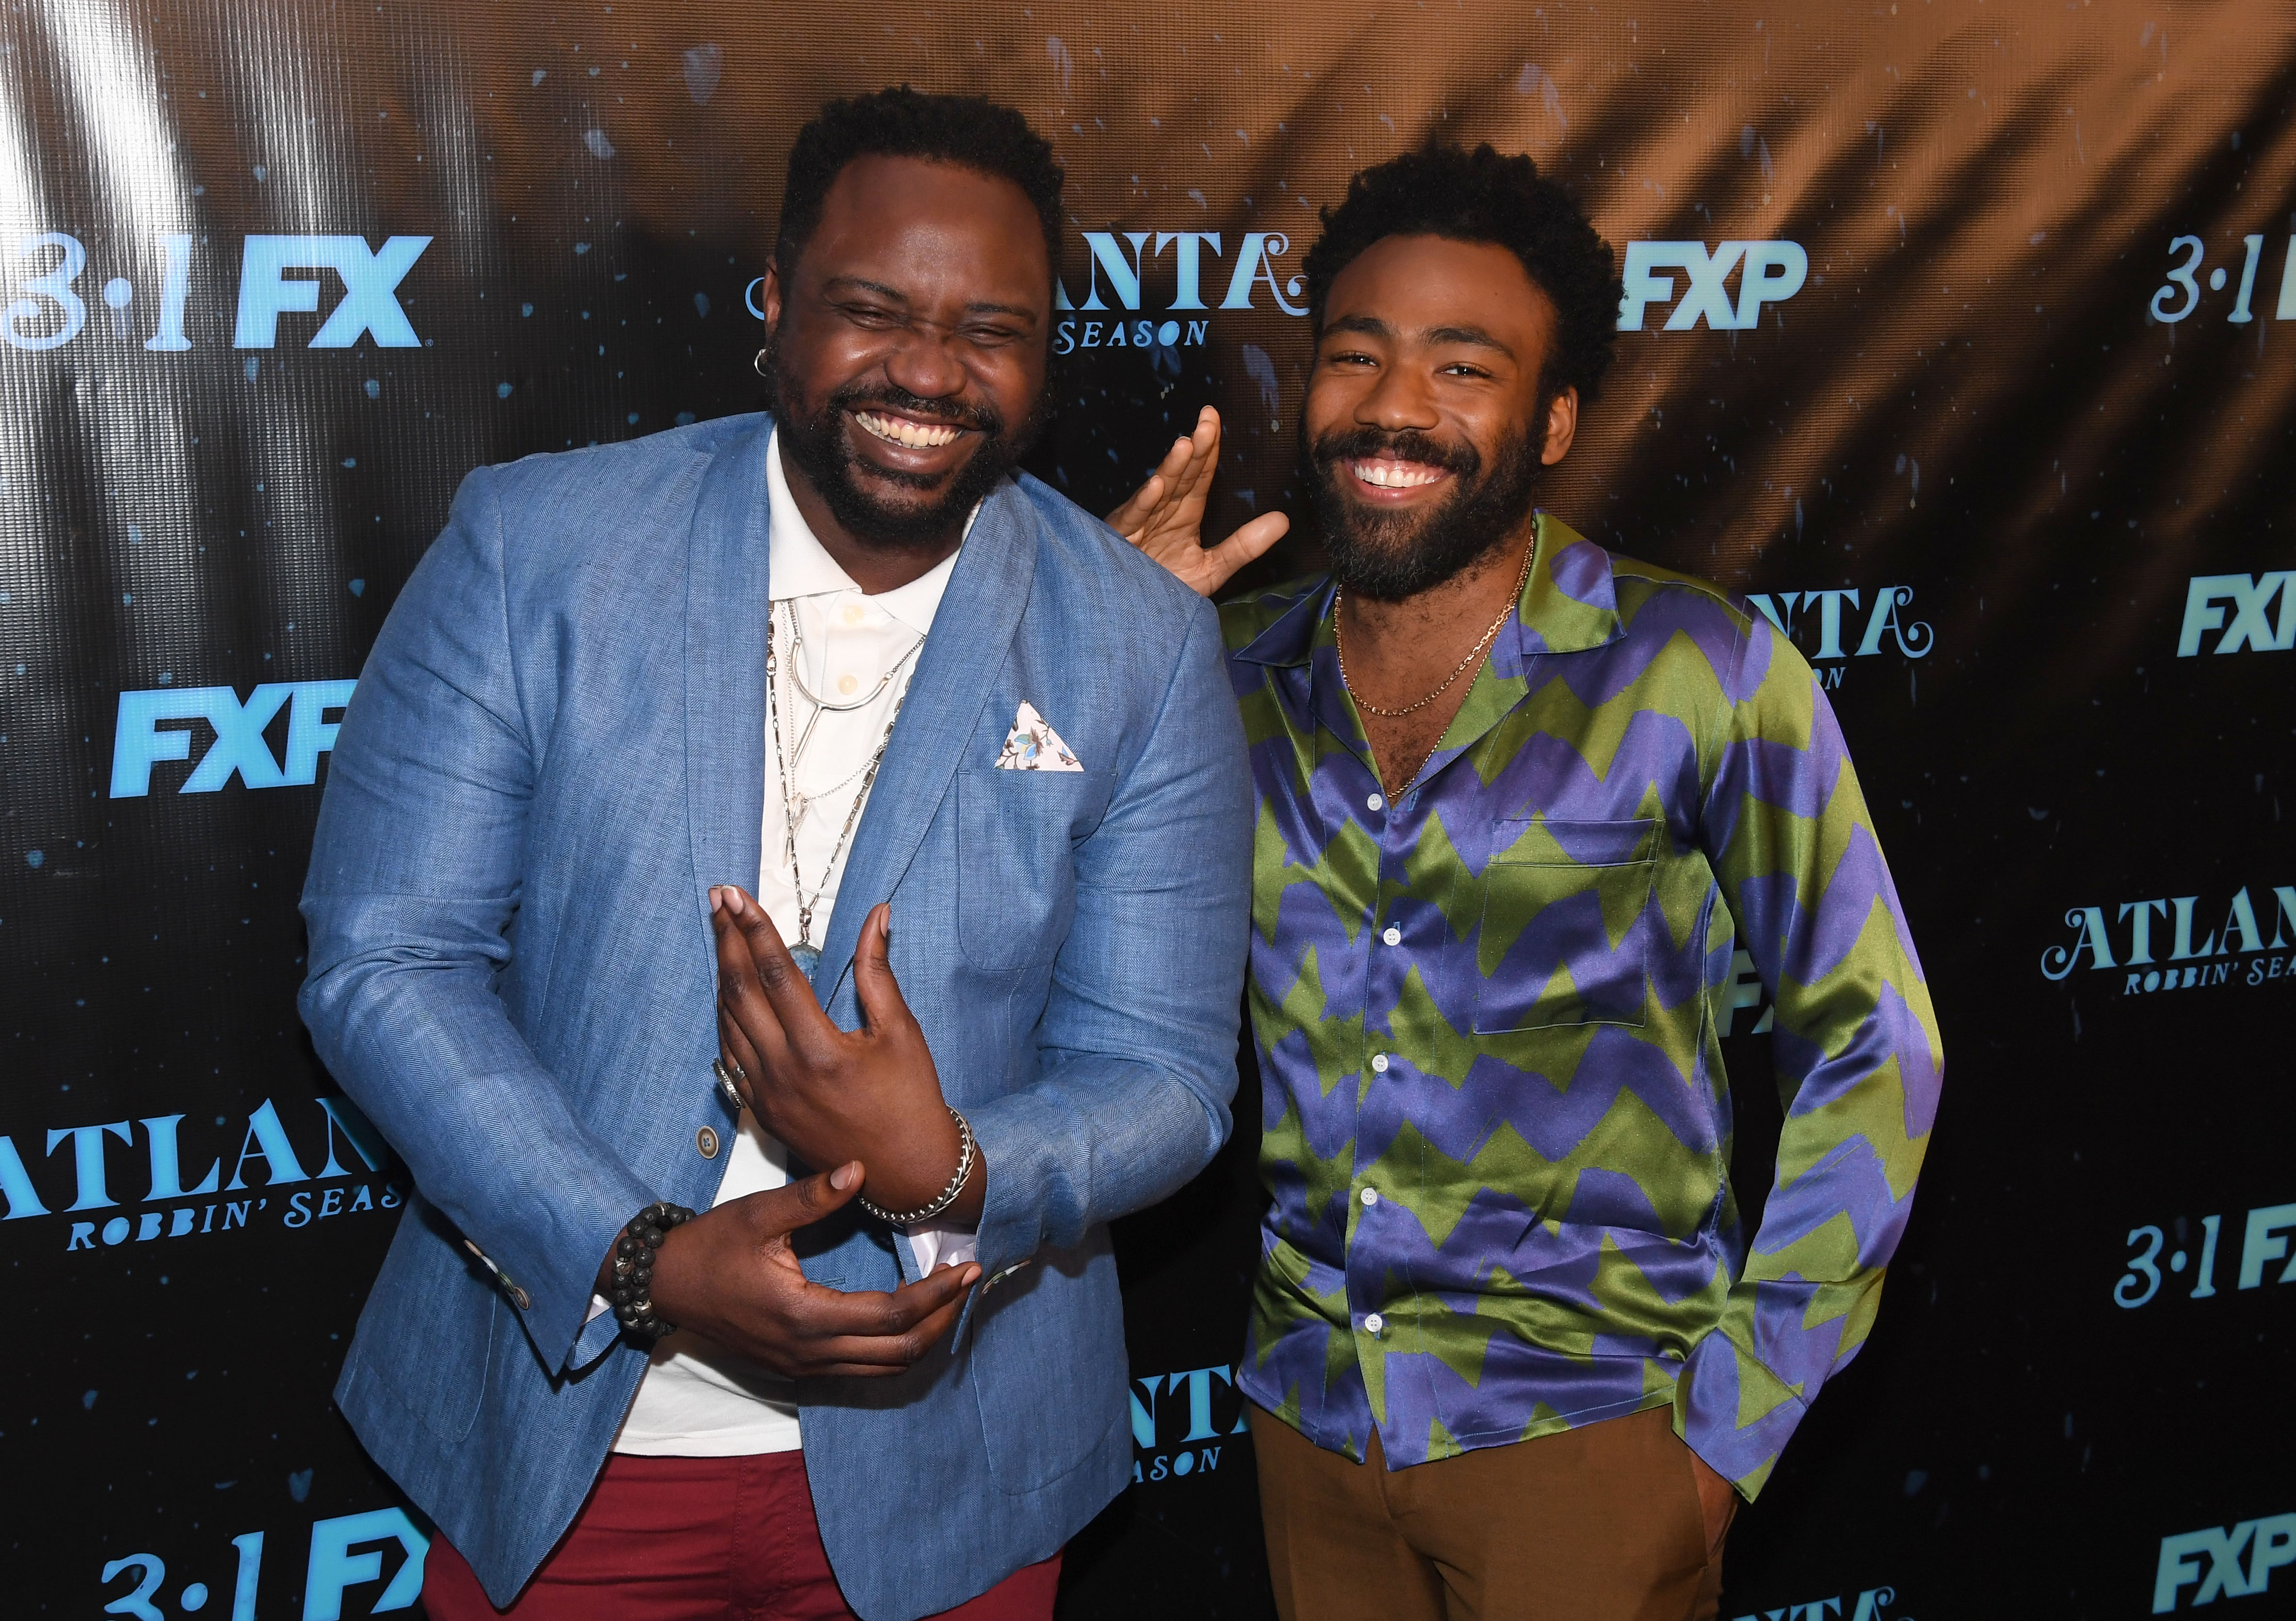 Bryan Tyree Henry and Donald Glover